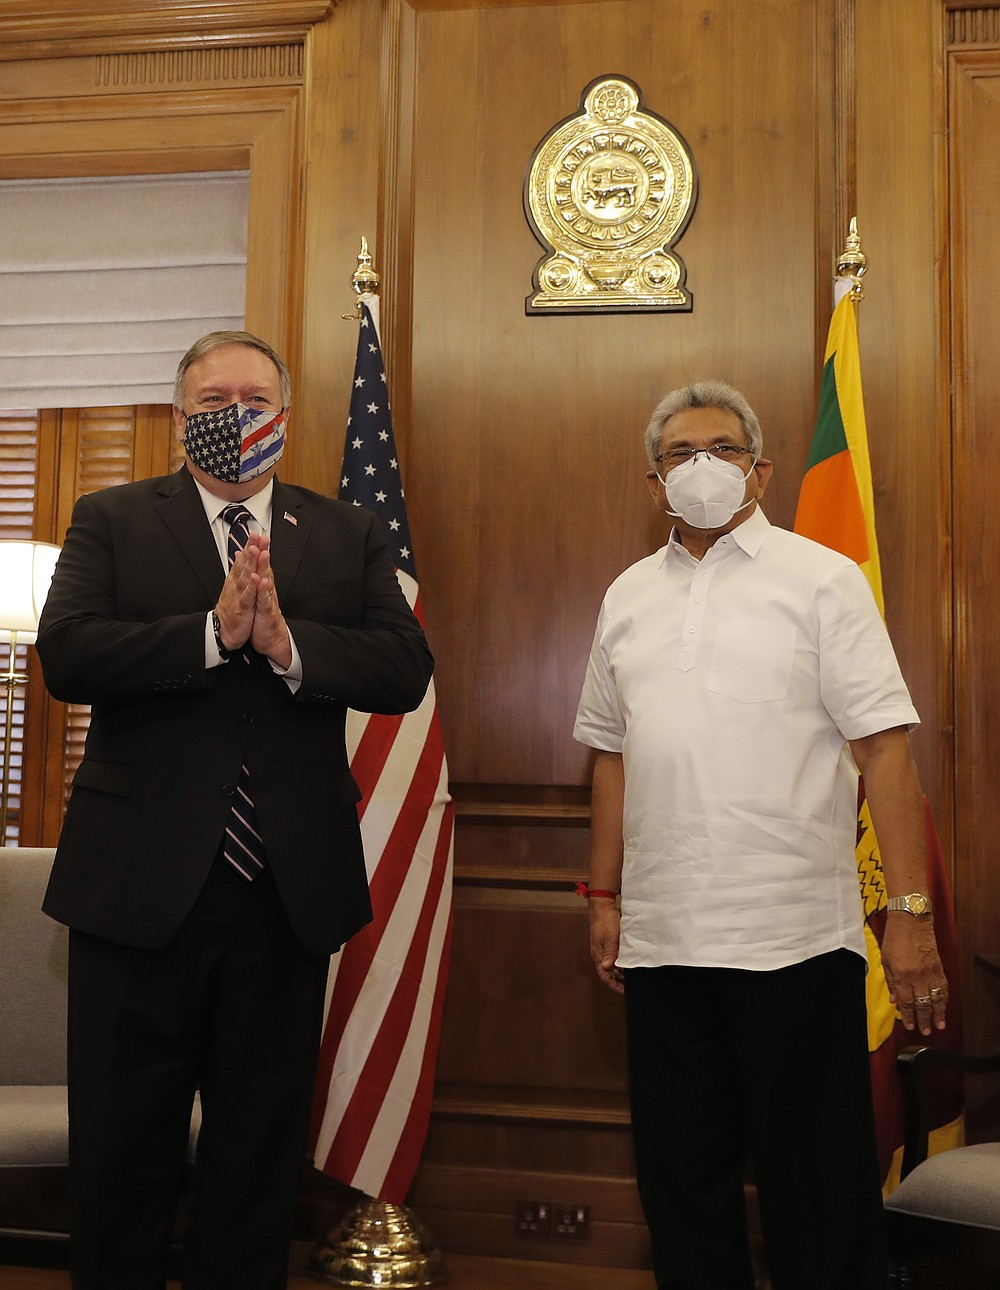 U.S. Secretary of State Mike Pompeo greets the gathering before his meeting with Sri Lankan President Gotabaya Rajapksa in Colombo, Sri Lanka, Wednesday, Oct. 28, 2020. Pompeo plans to press Sri Lanka to push back against Chinese assertiveness, which U.S. officials complain is highlighted by predatory lending and development projects that benefit China more than the presumed recipients. The Chinese Embassy in Sri Lanka denounced Pompeo's visit to the island even before he arrived there, denouncing a senior U.S. official's warning that the country should be wary of Chinese investment. (AP Photo/Eranga Jayawardena, Pool)